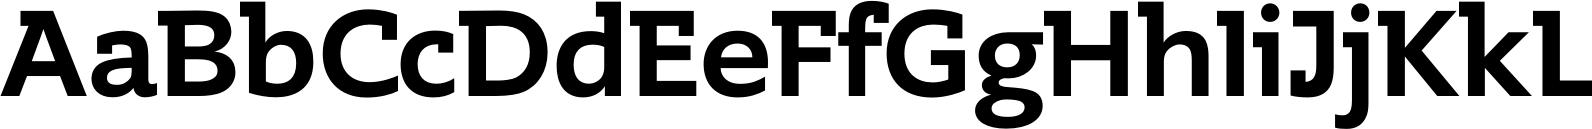 Supra Demiserif Medium Font